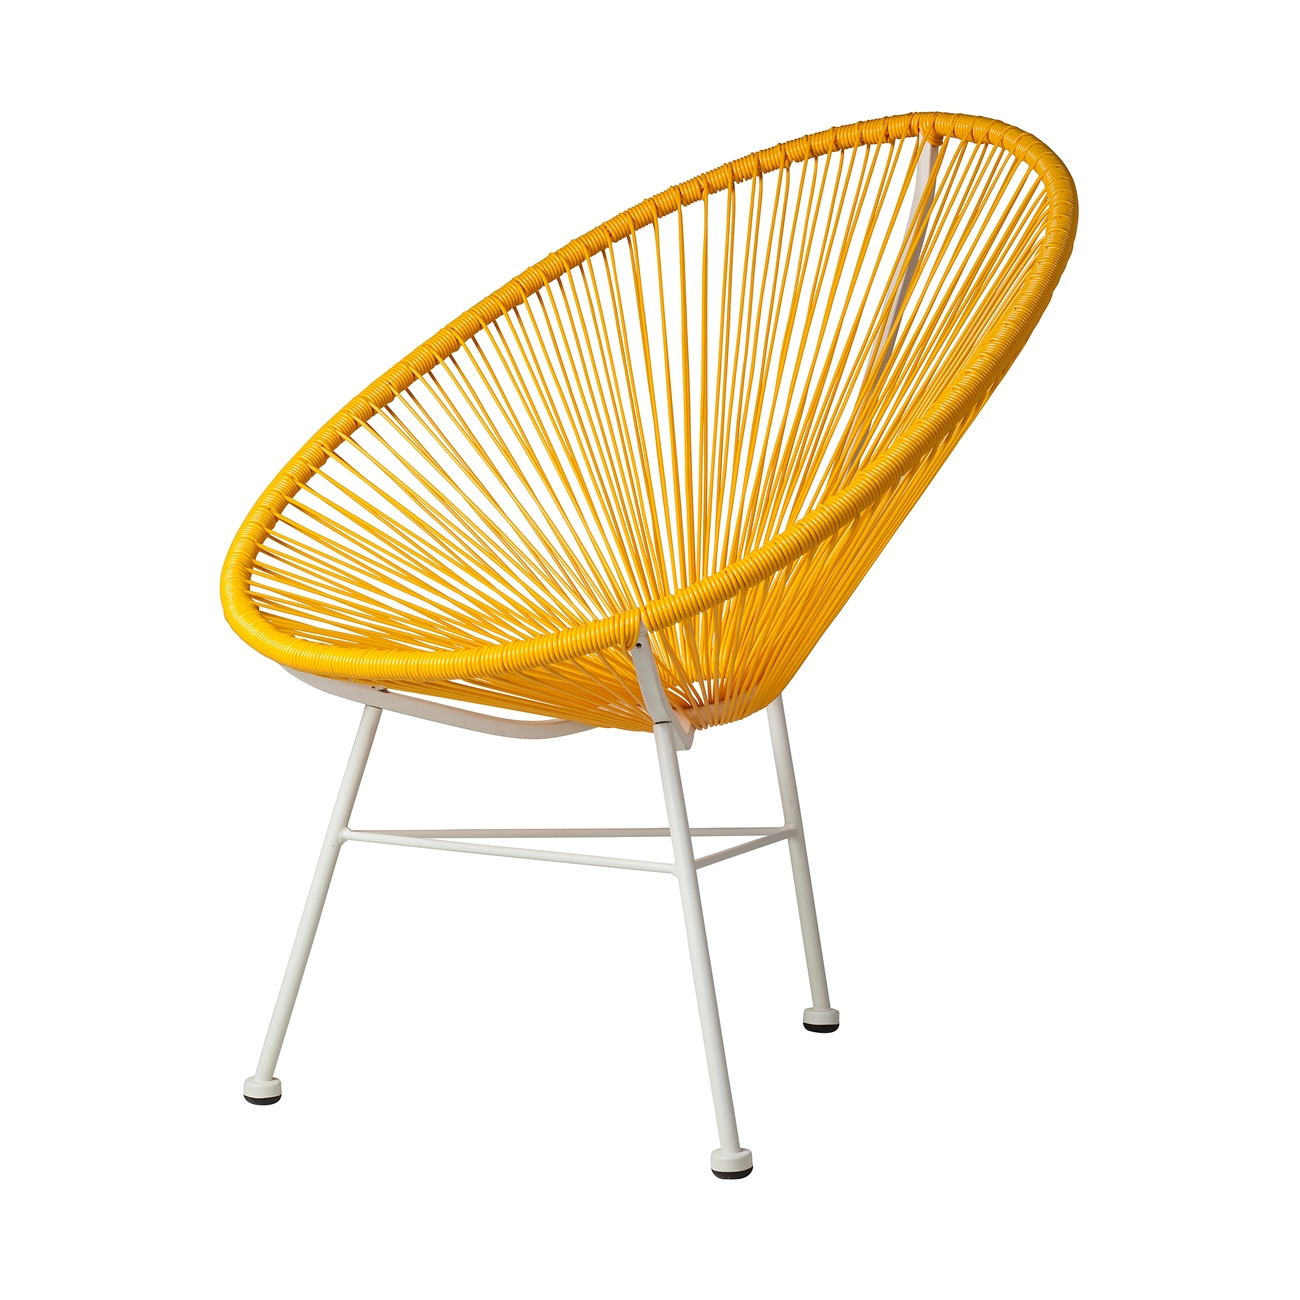 Acapulco Lounge Chair in Yellow, The Khazana Home Austin Furniture Store